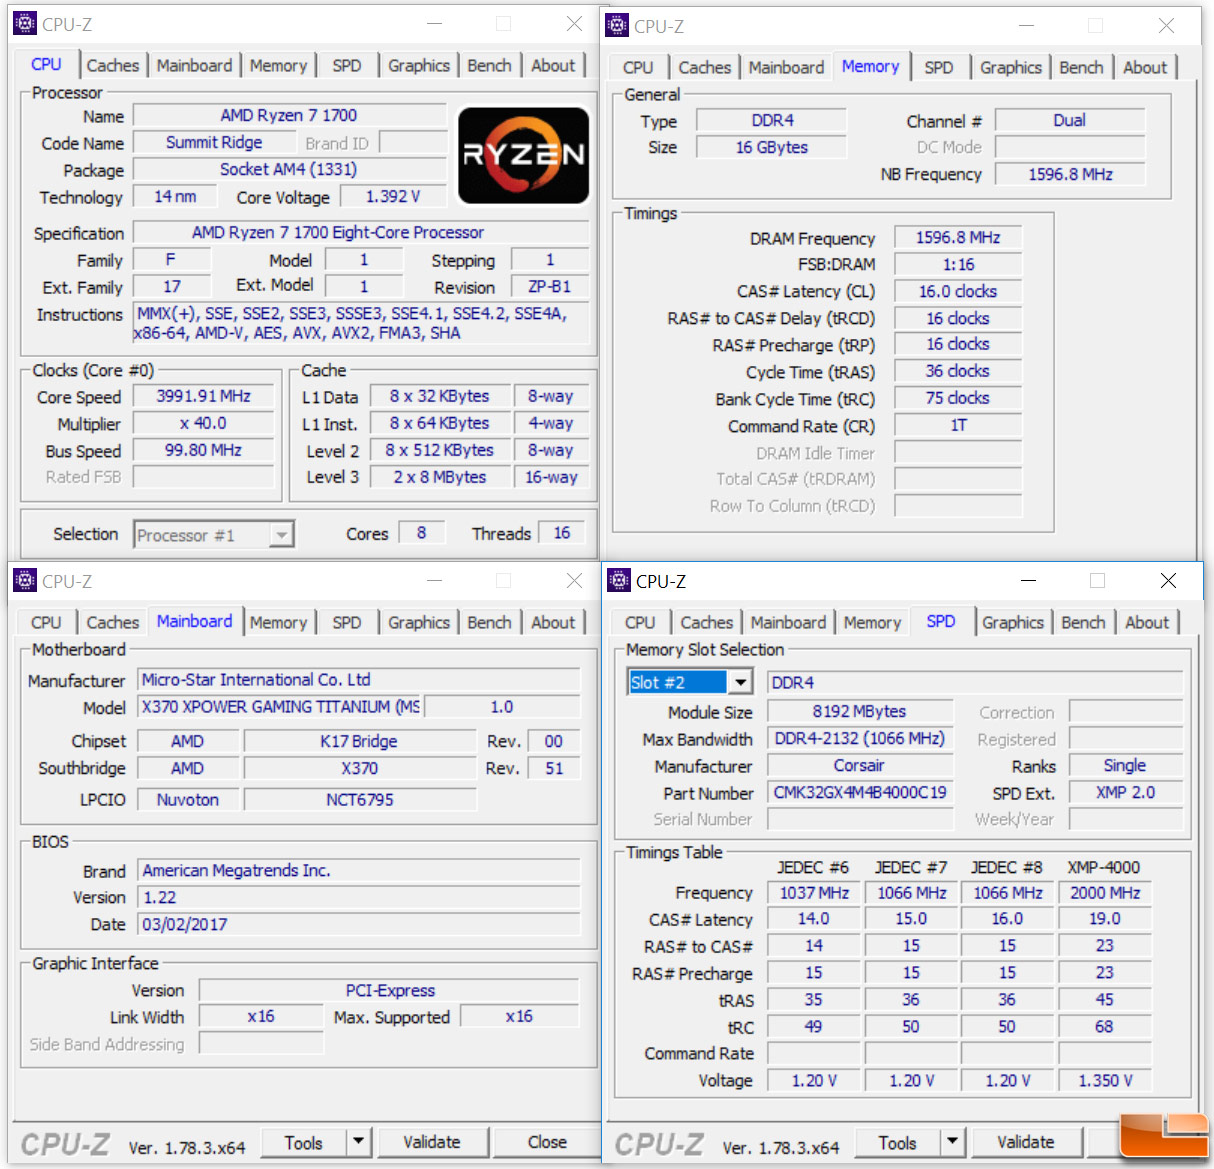 Ddr4 Memory Scaling On Amd Am4 Platform The Best Memory Kit For Amd Ryzen Cpus Legit Reviews Answering What Ddr4 Clock Speed Is Best For Amd Am4 Platforms